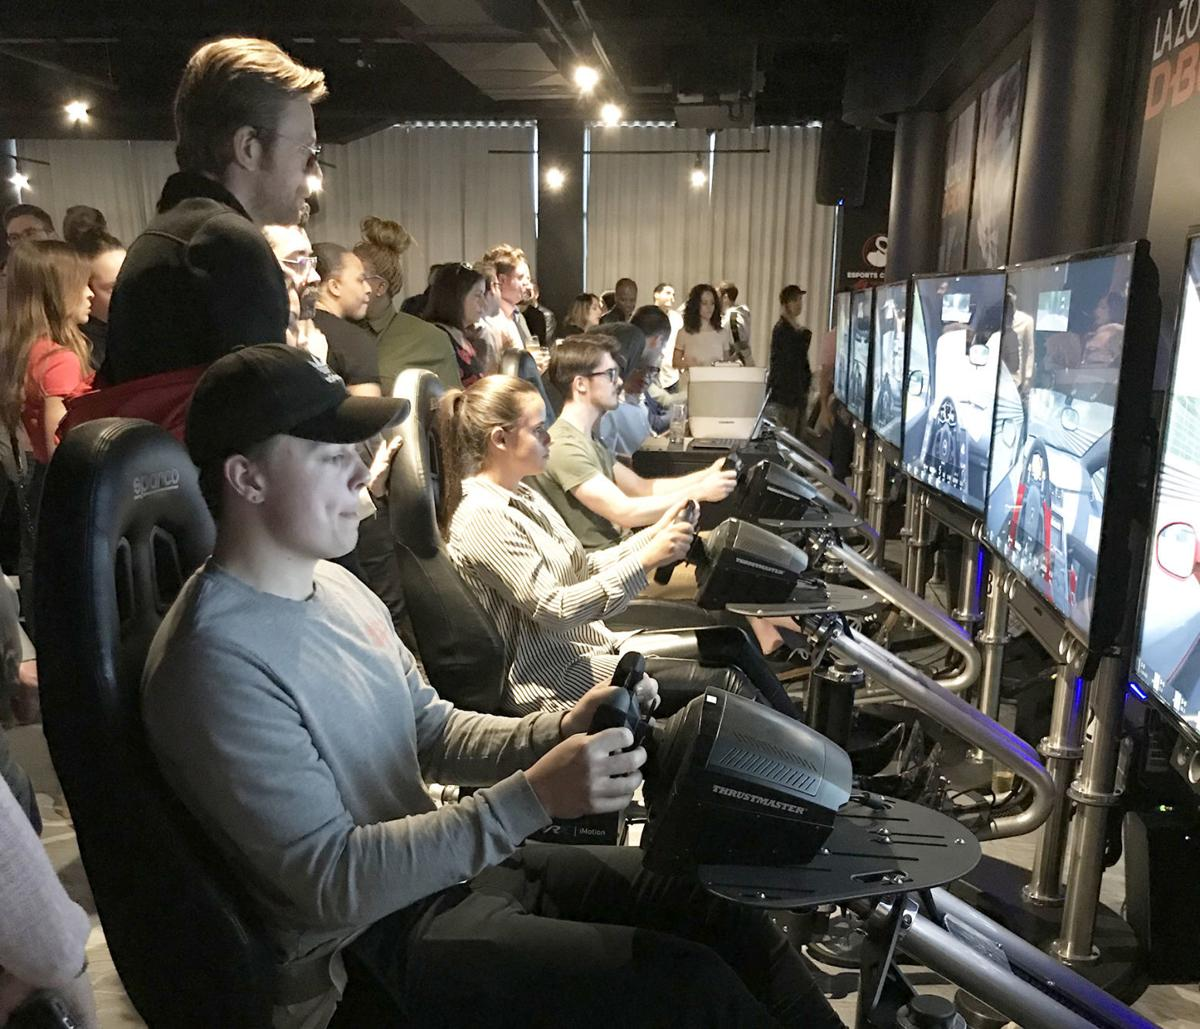 Esports Central brings gaming to a new level in Montreal